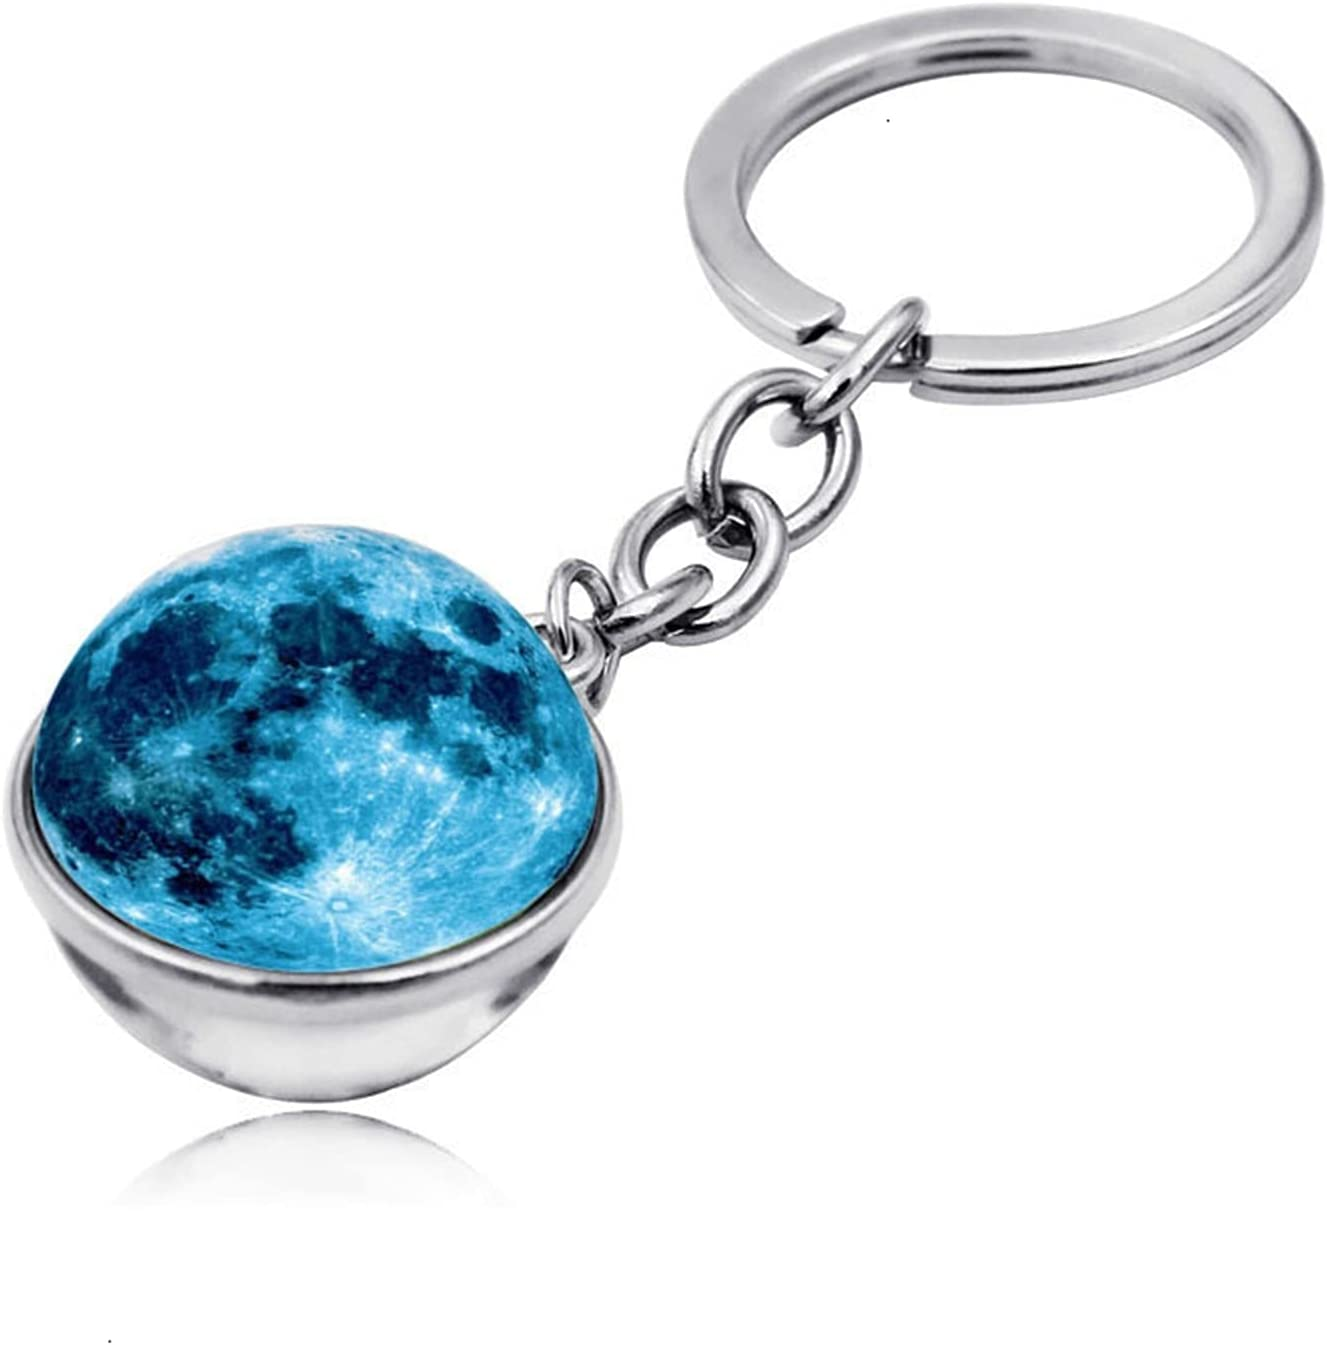 LQMM 1Pcs Solar System Planet Keychain Galaxy Nebula Space Moon Earth Mars Art Picture Double Side Glass Key Chain Car Keyring Bag Pendant 606 (Color : 12)